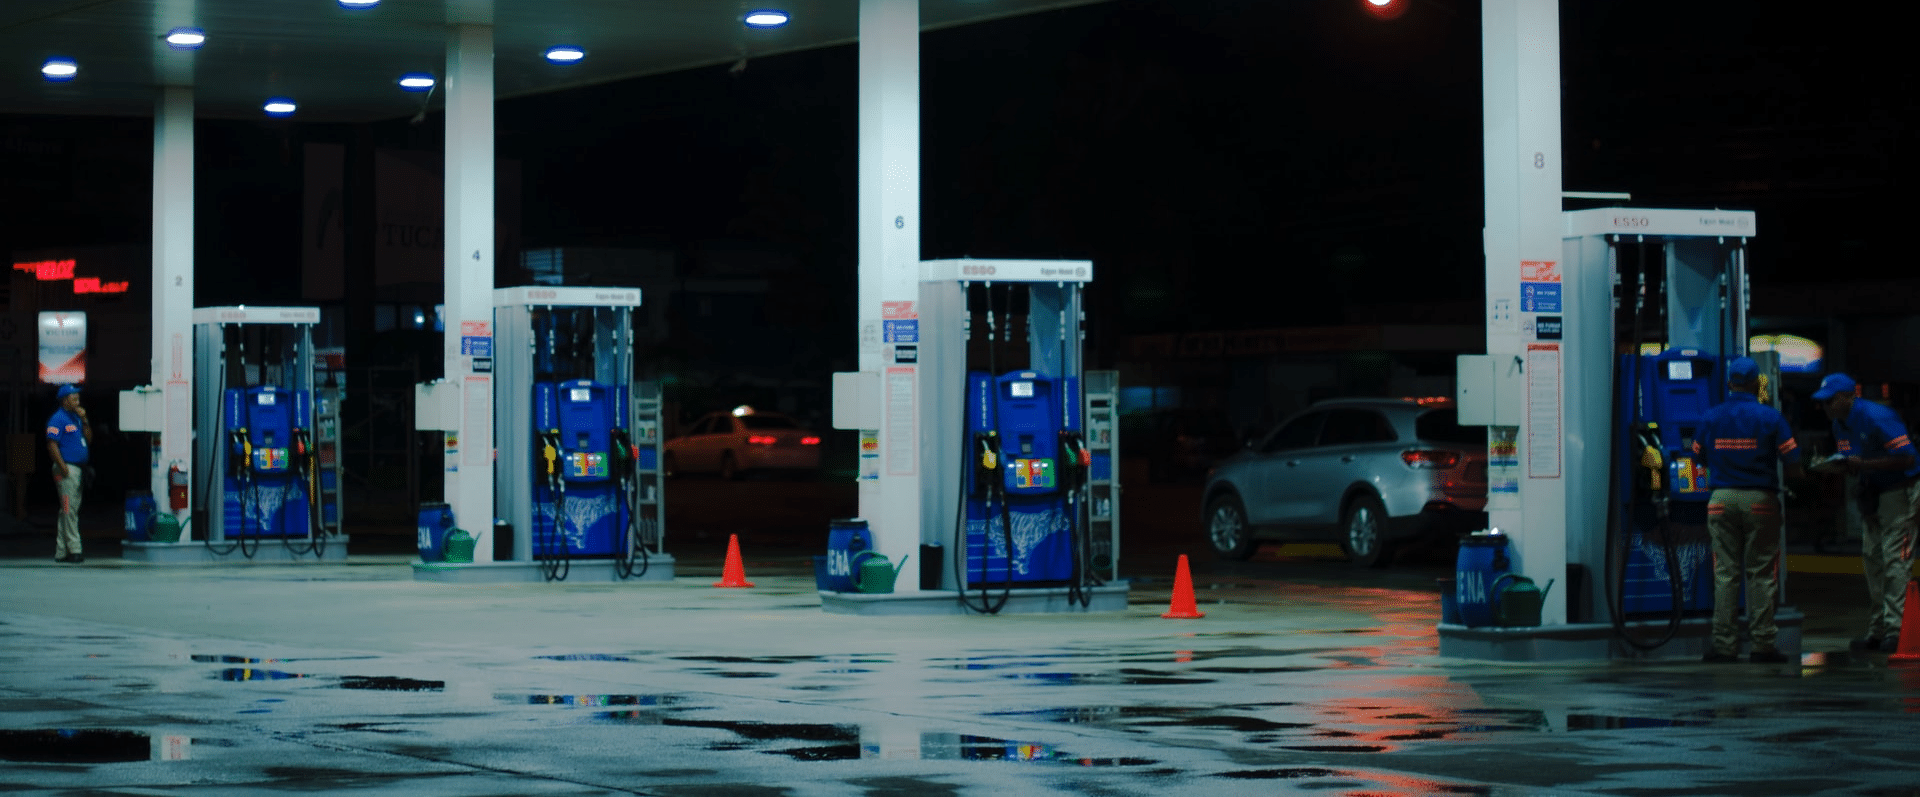 Nowadays, all convenience and fuel retailers should incorporate payment features into their mobile app.